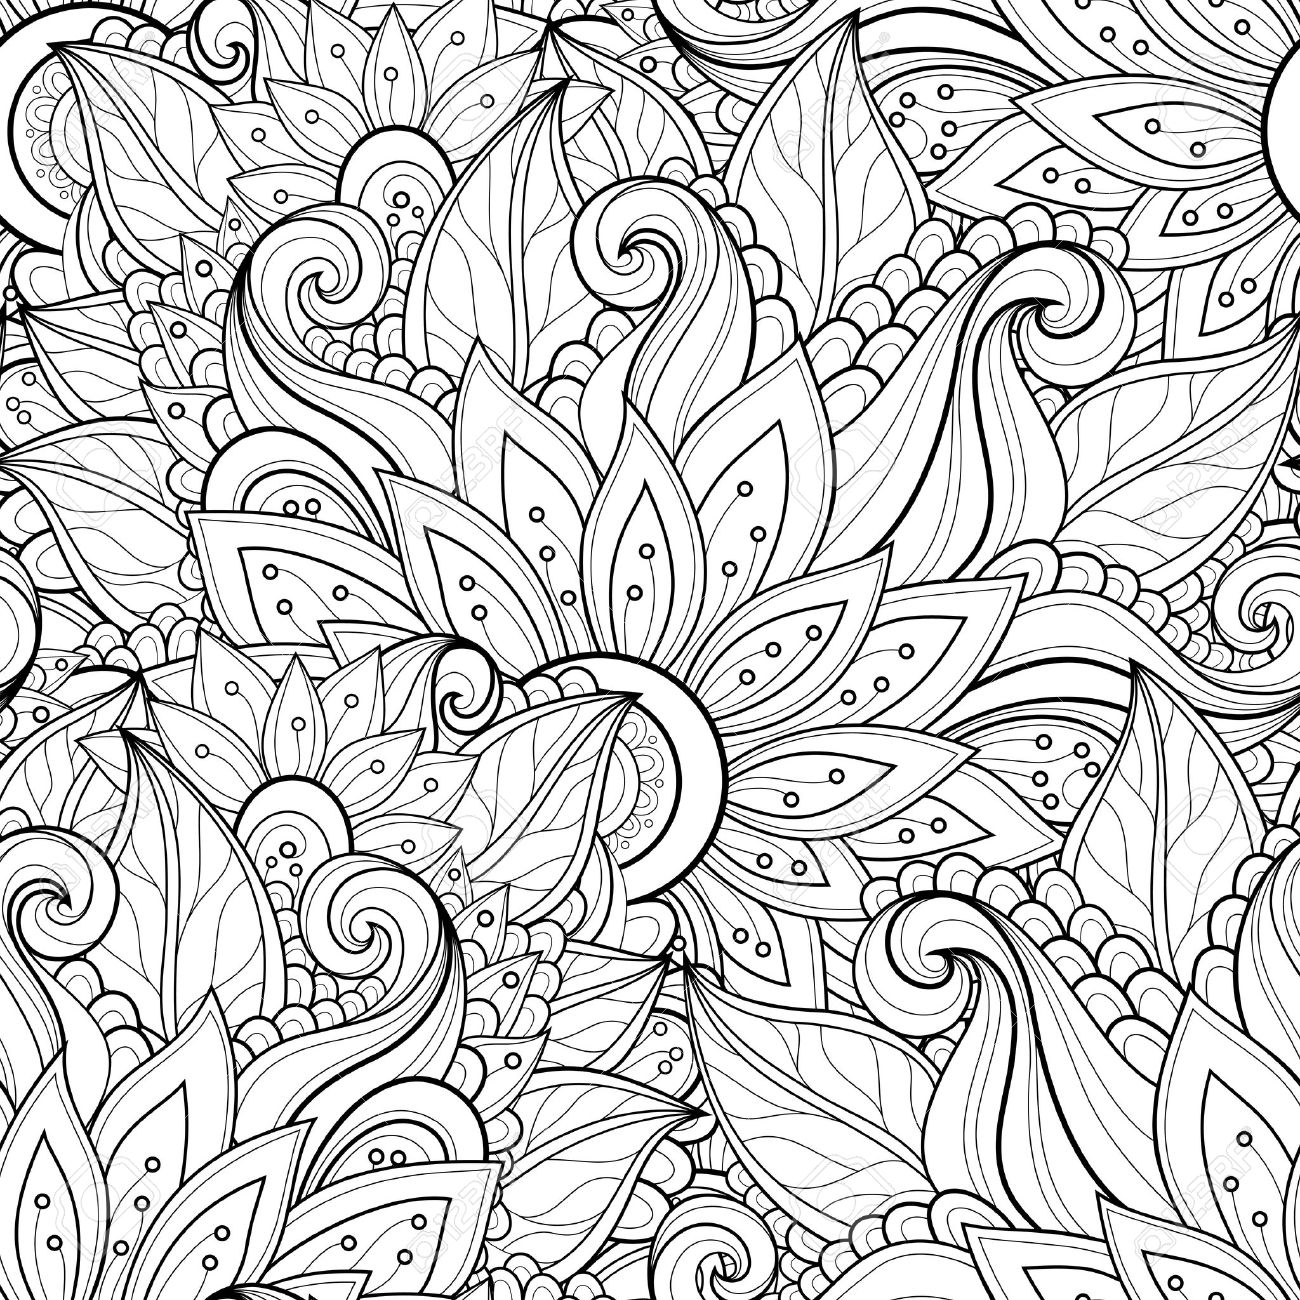 Vector Seamless Monochrome Floral Pattern. Hand Drawn Floral ...